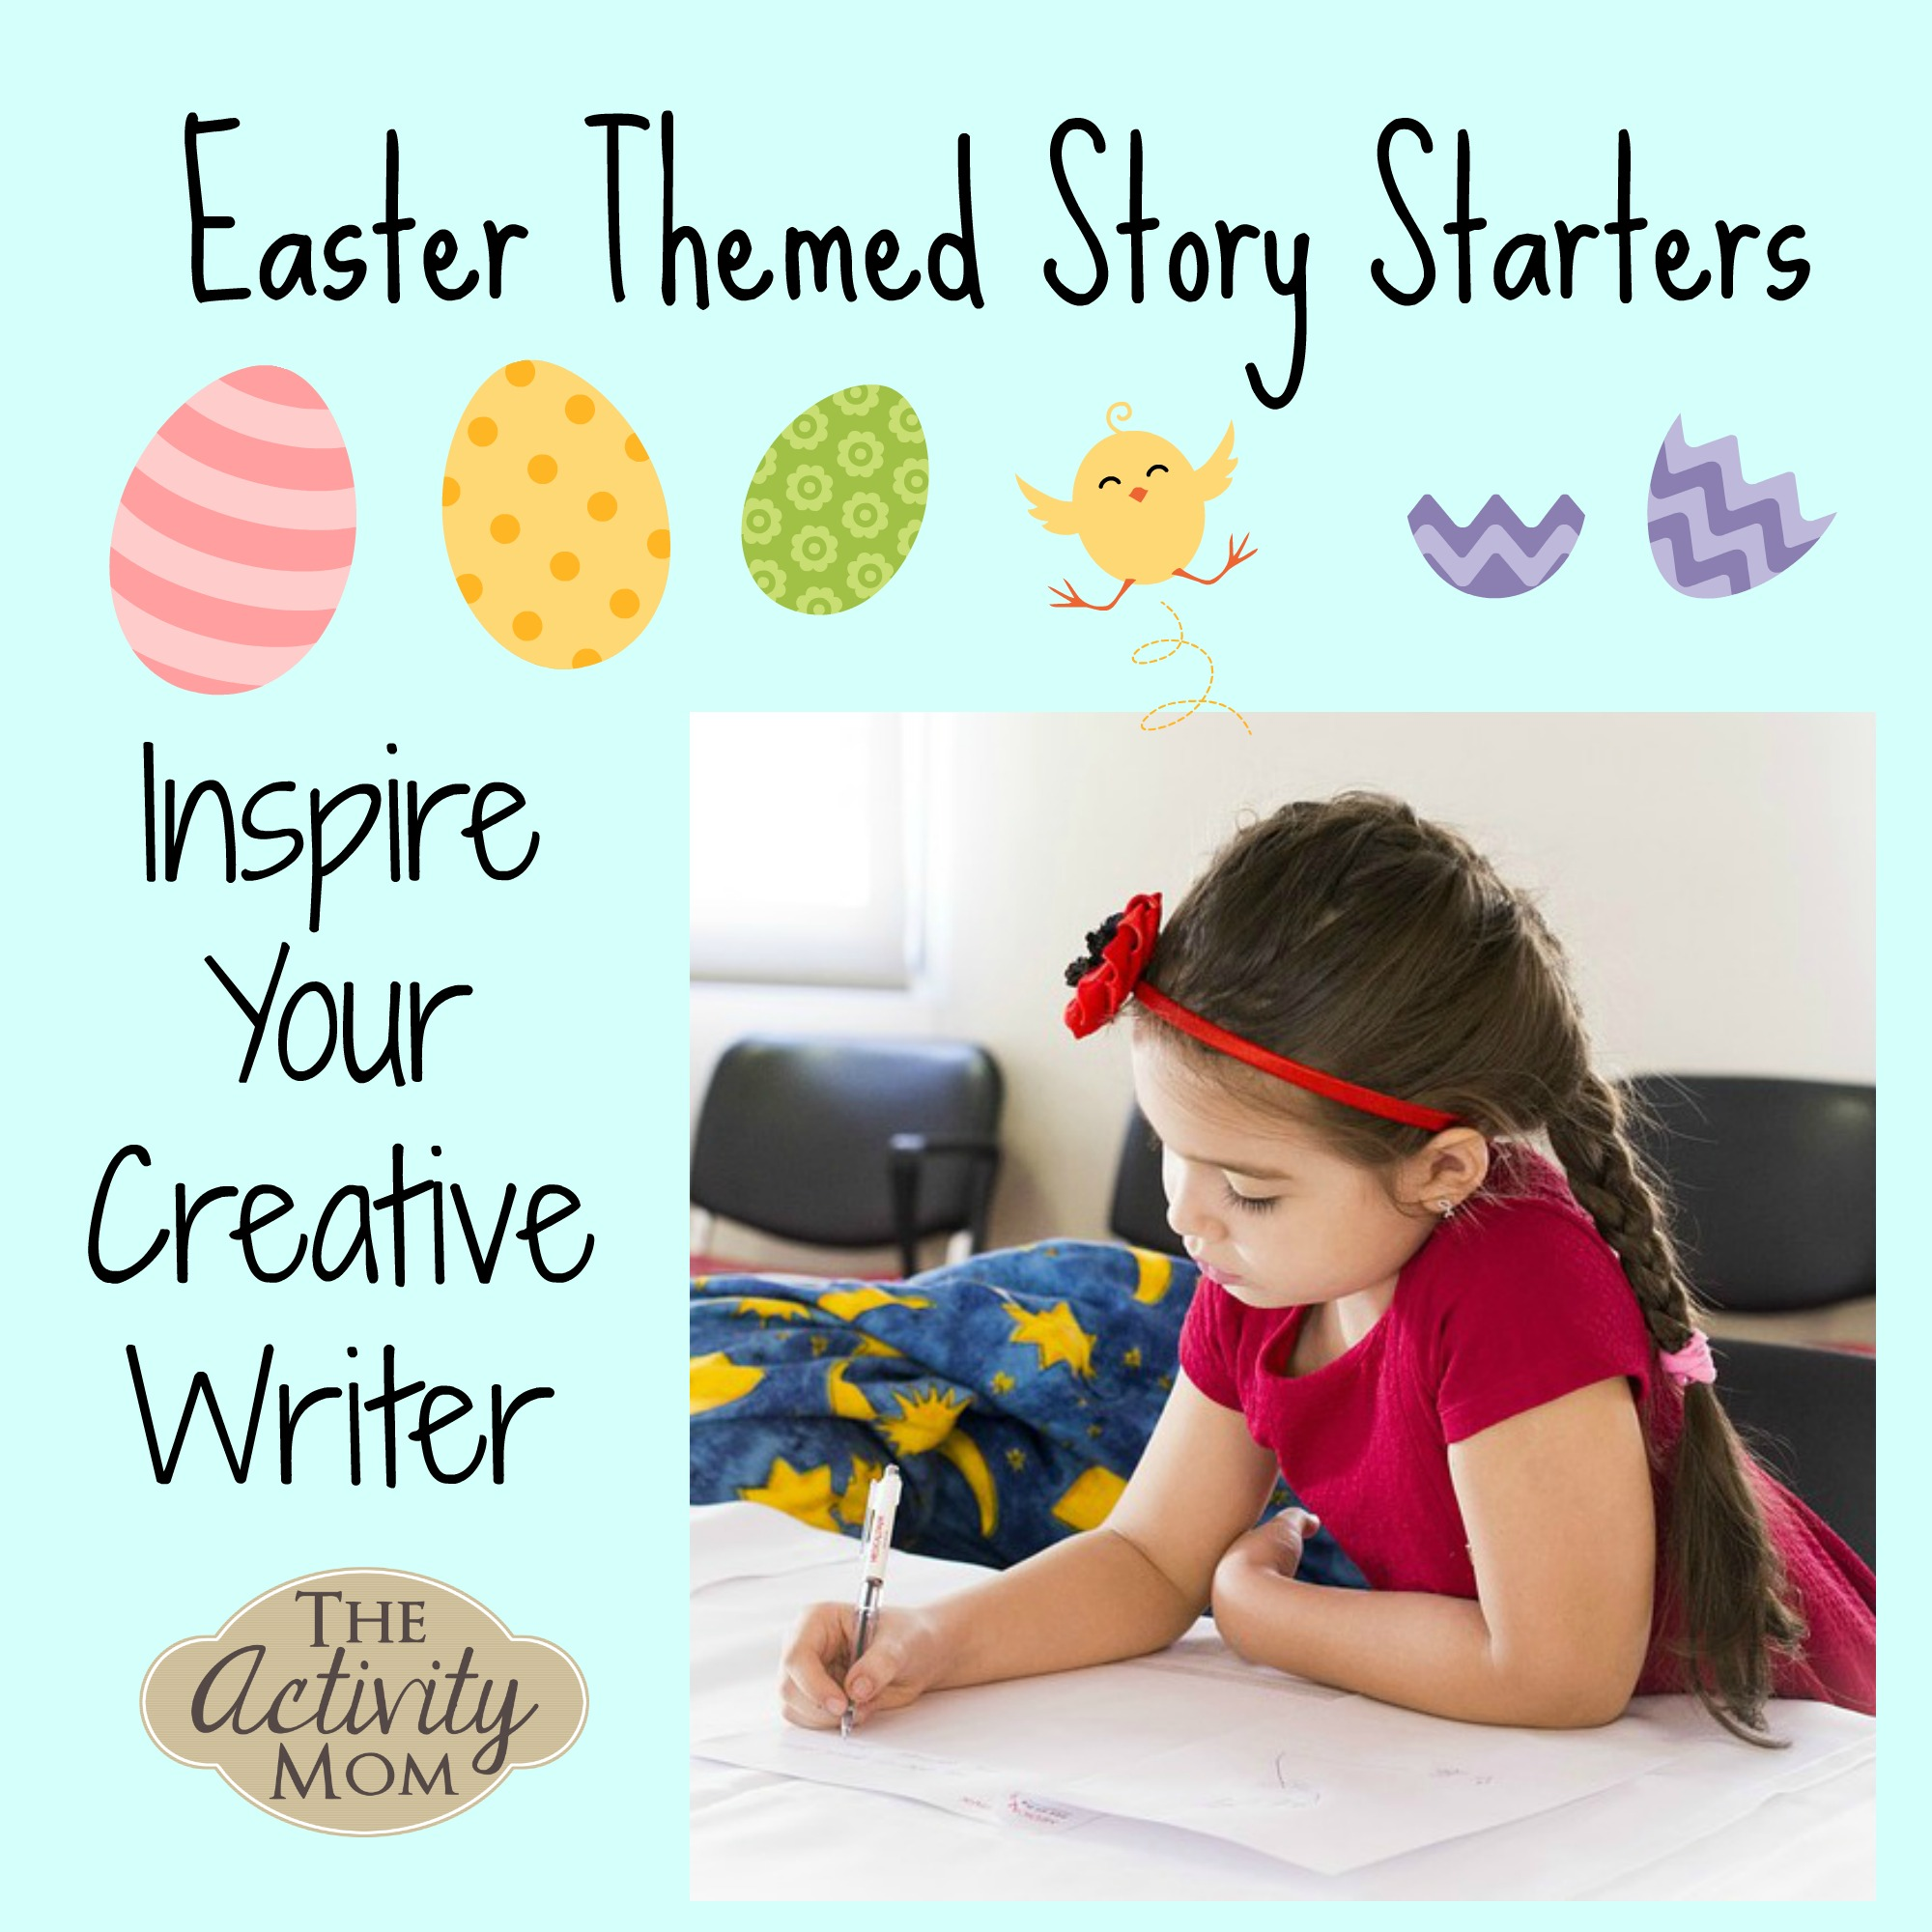 The Activity Mom Creative Writing And Story Telling With Easter Story Starters Printable The Activity Mom Easter stories using writing process